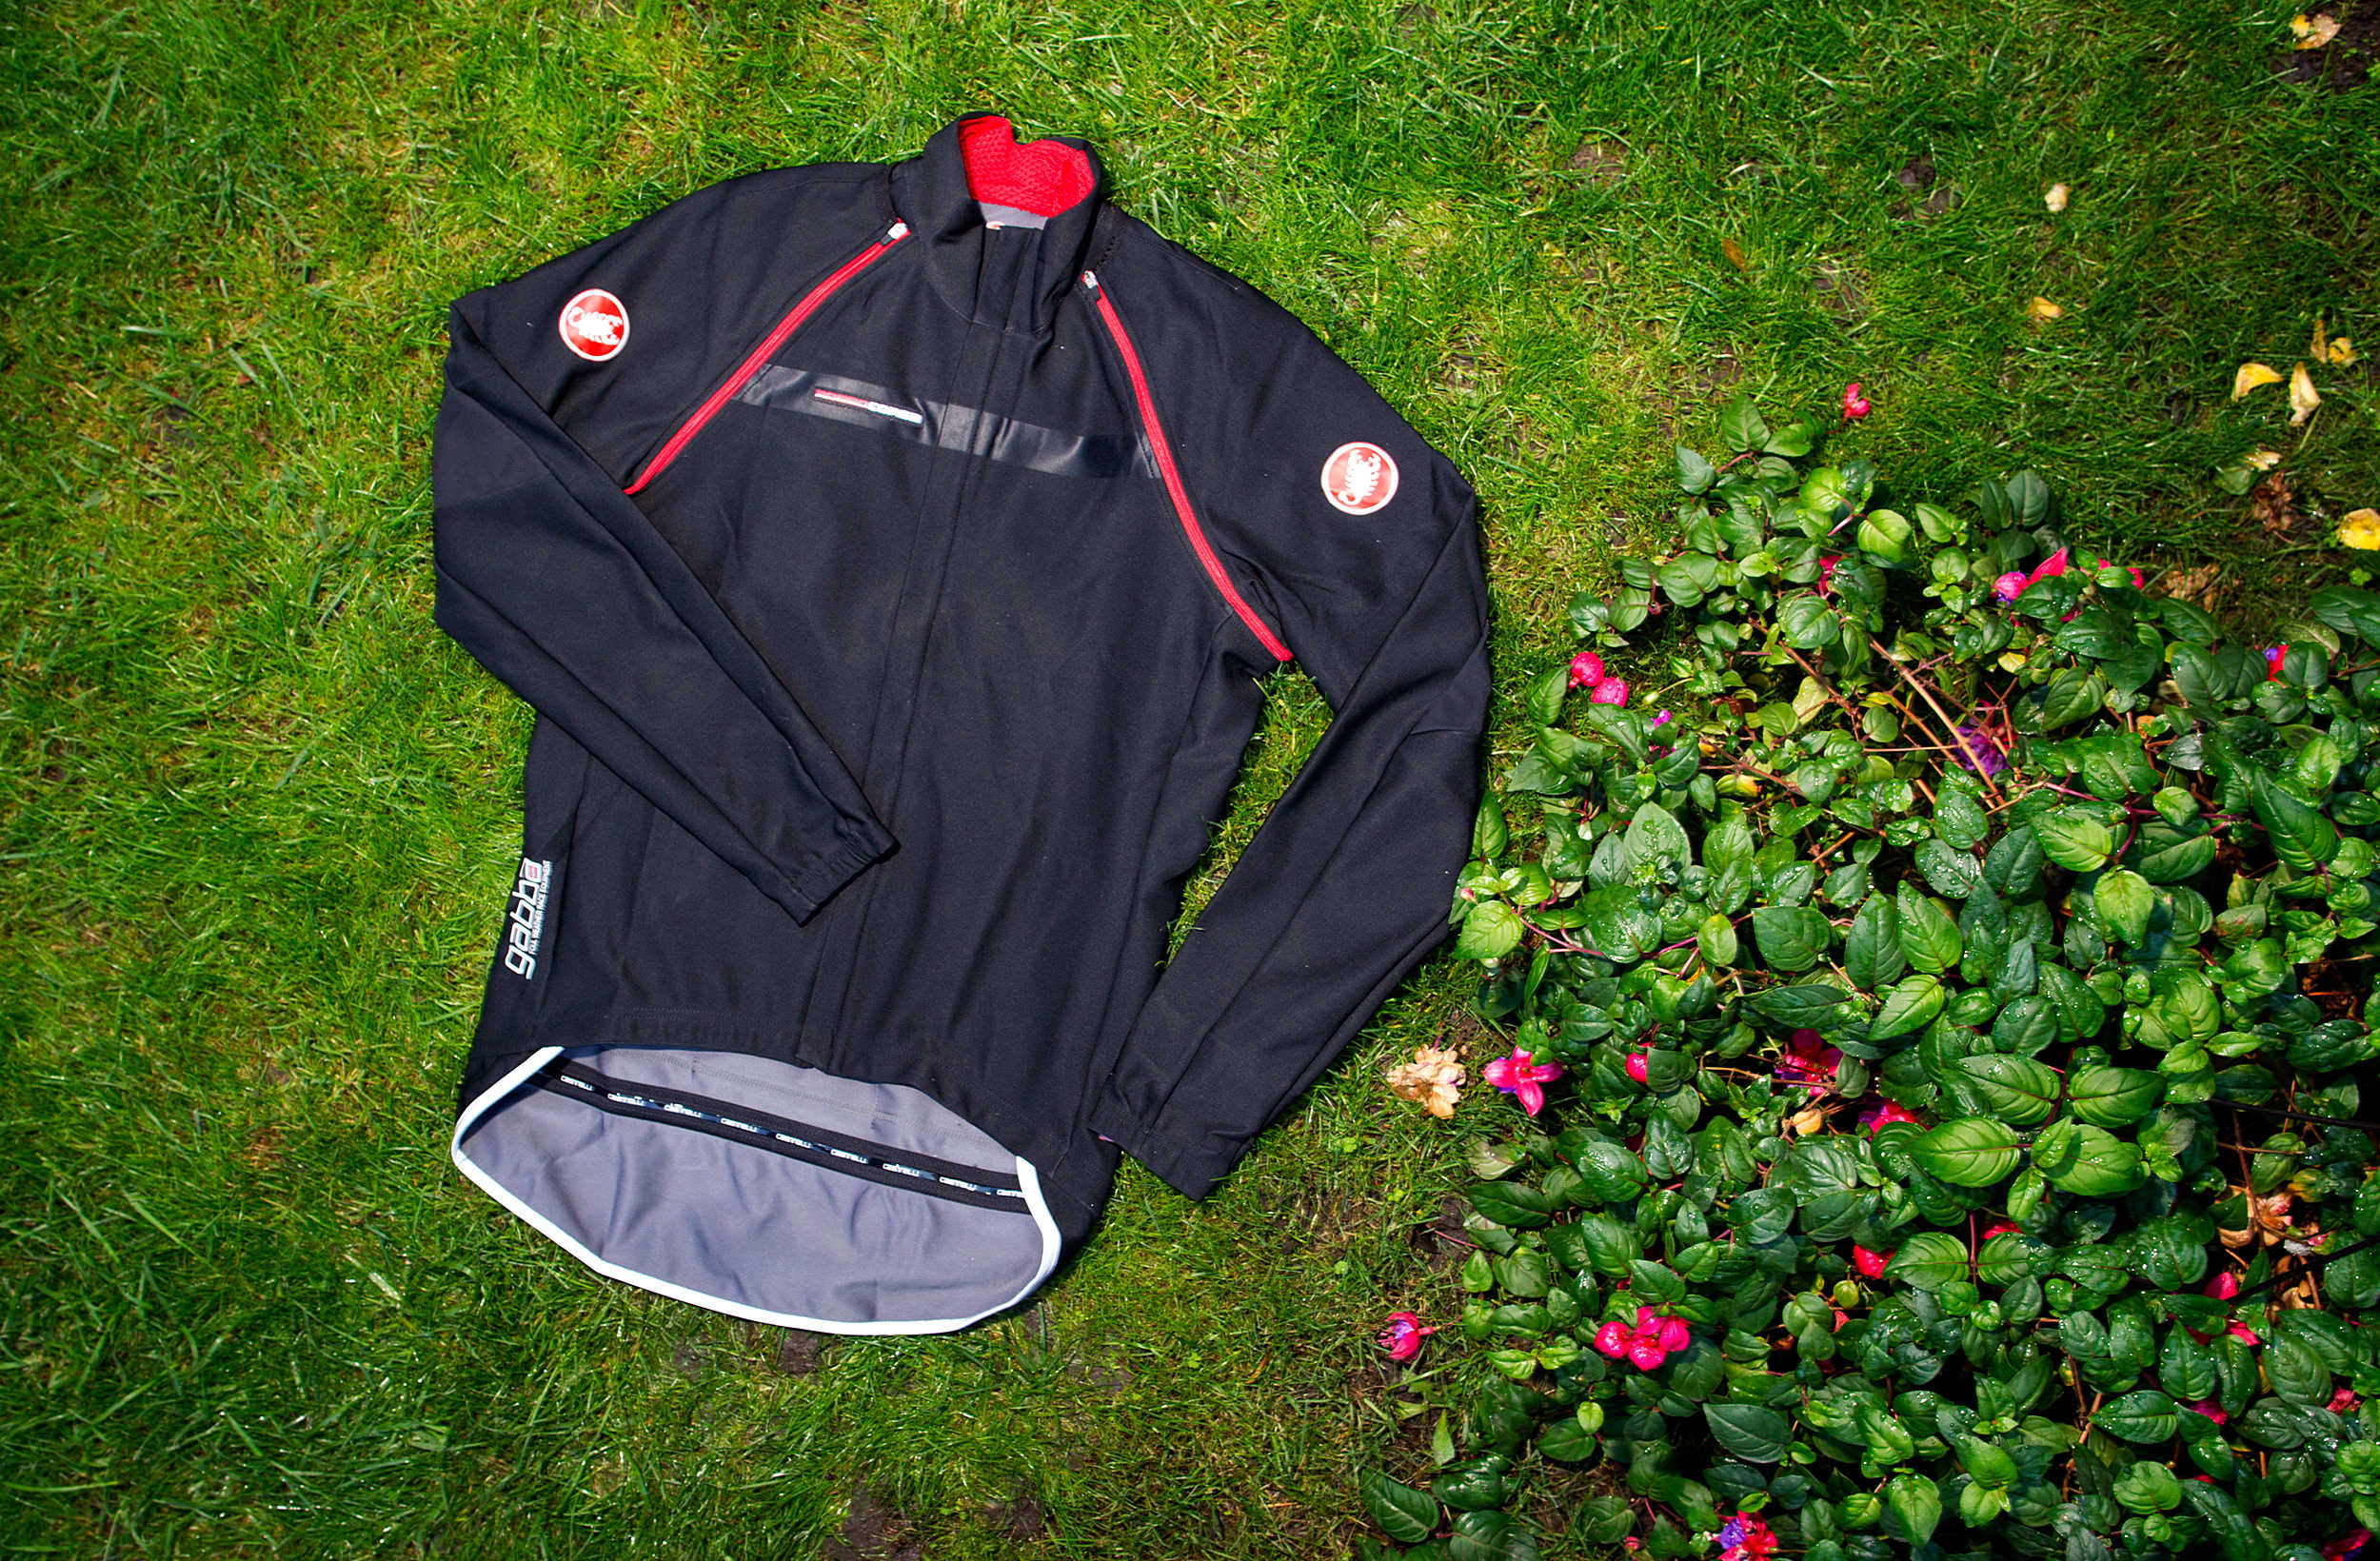 With a zip of the sleeves the Gabba 2 jacket readies you for any amount of inclement weather.